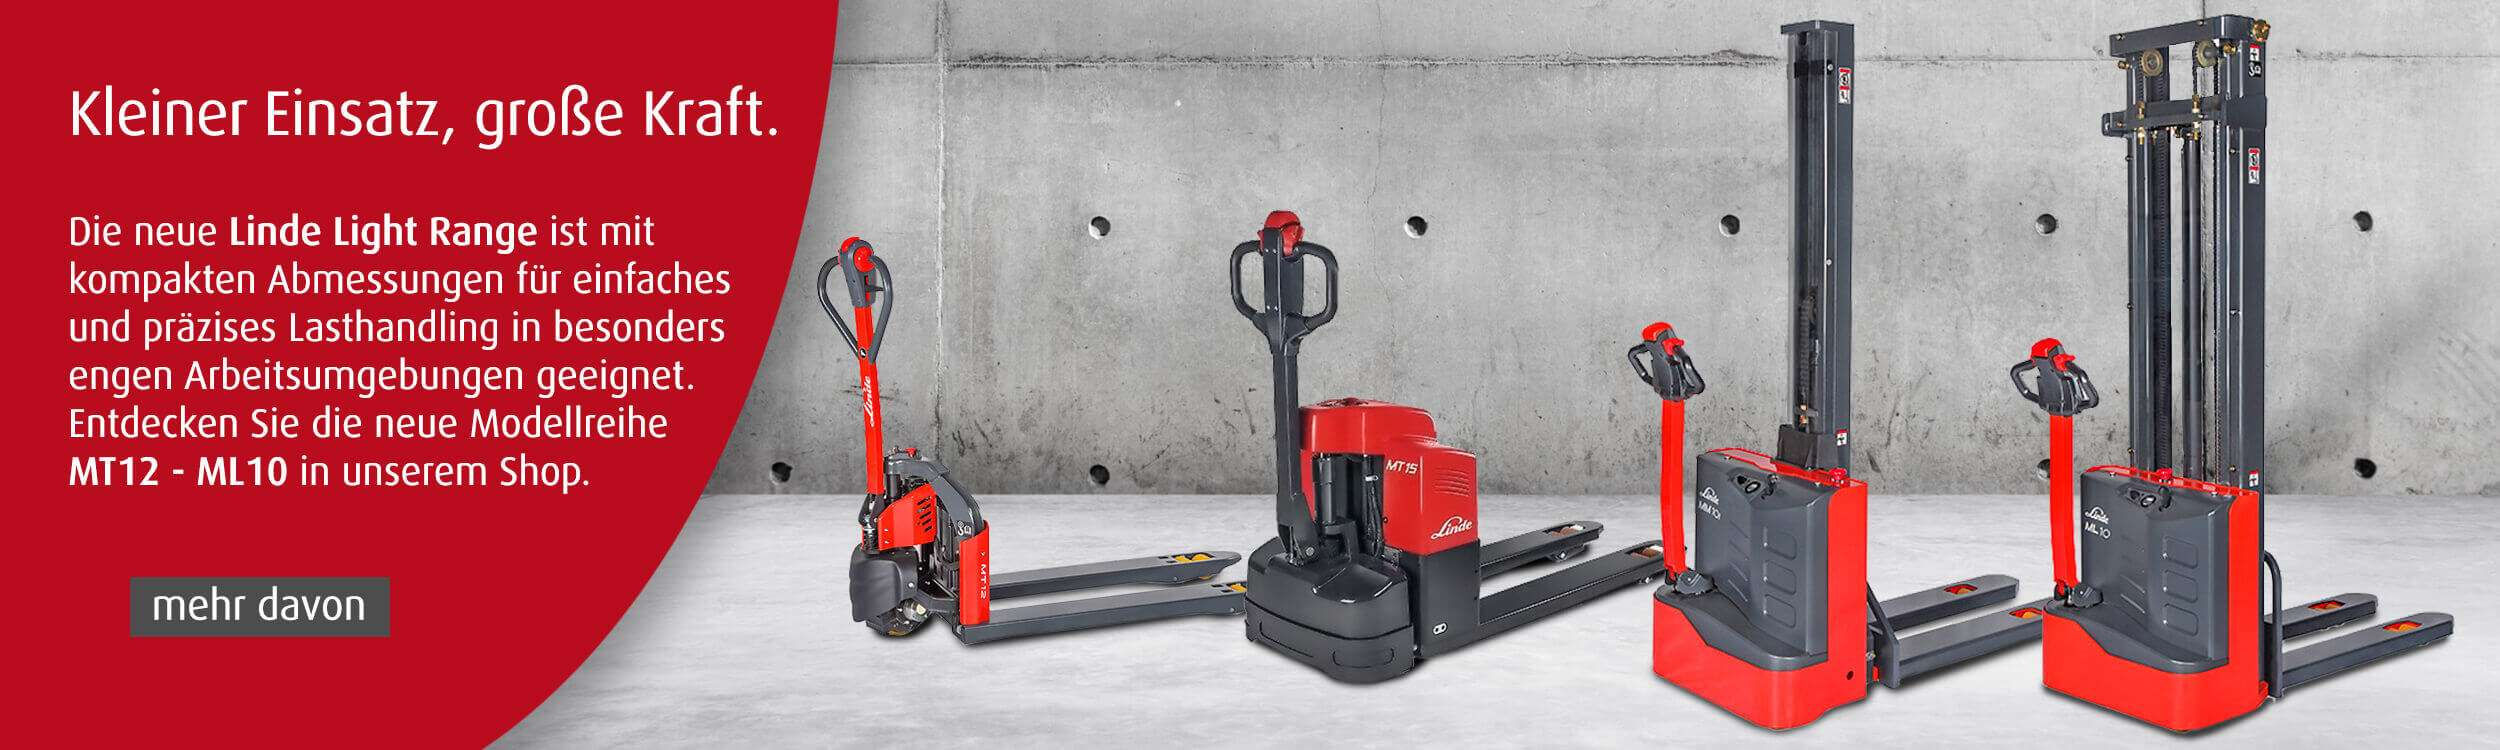 Linde Light Range